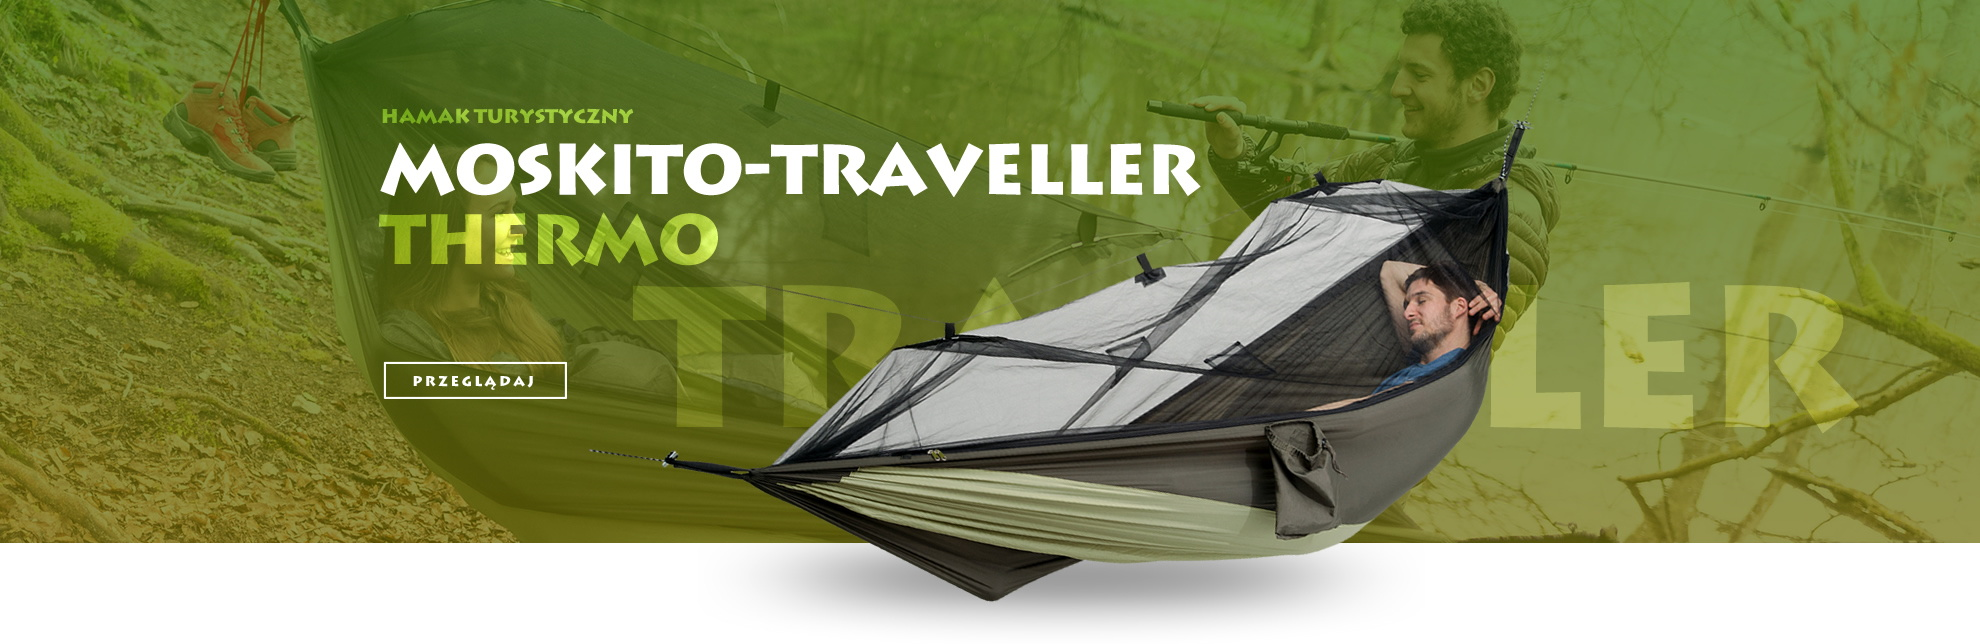 Moskito-traveller thermo